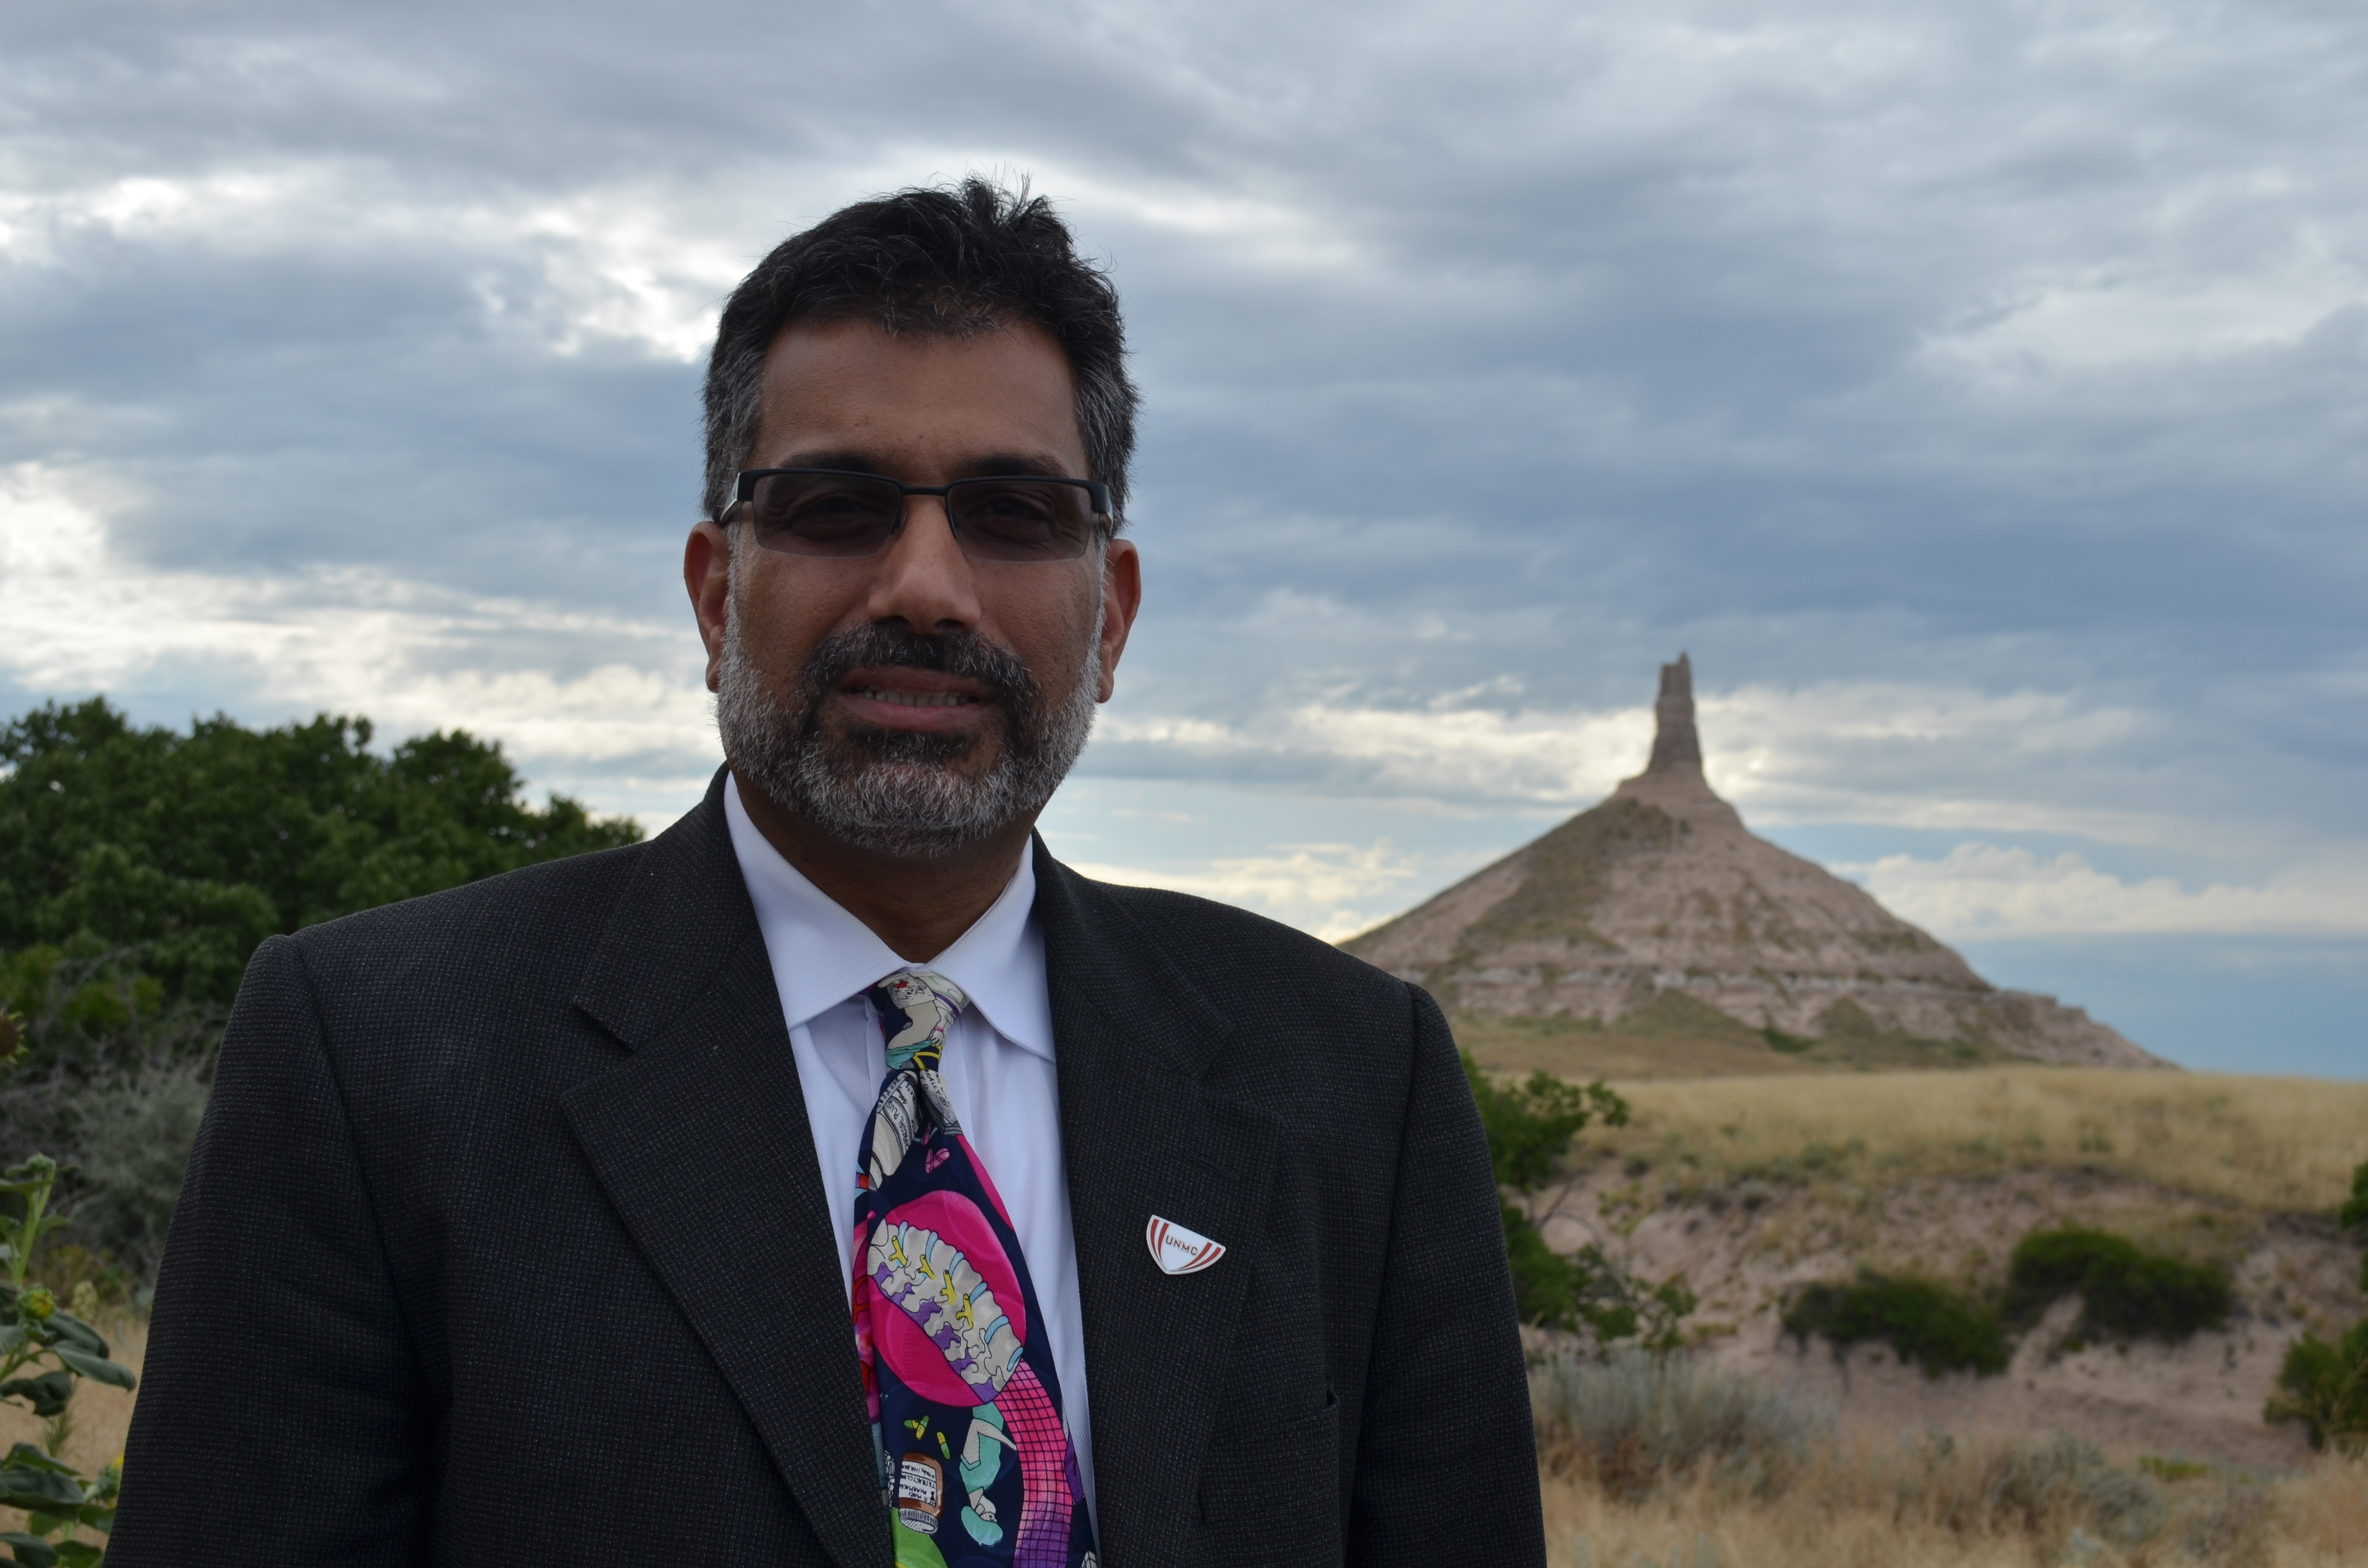 College of Public Health Dean Ali S. Khan, M.D., M.P.H., near Chimney Rock.